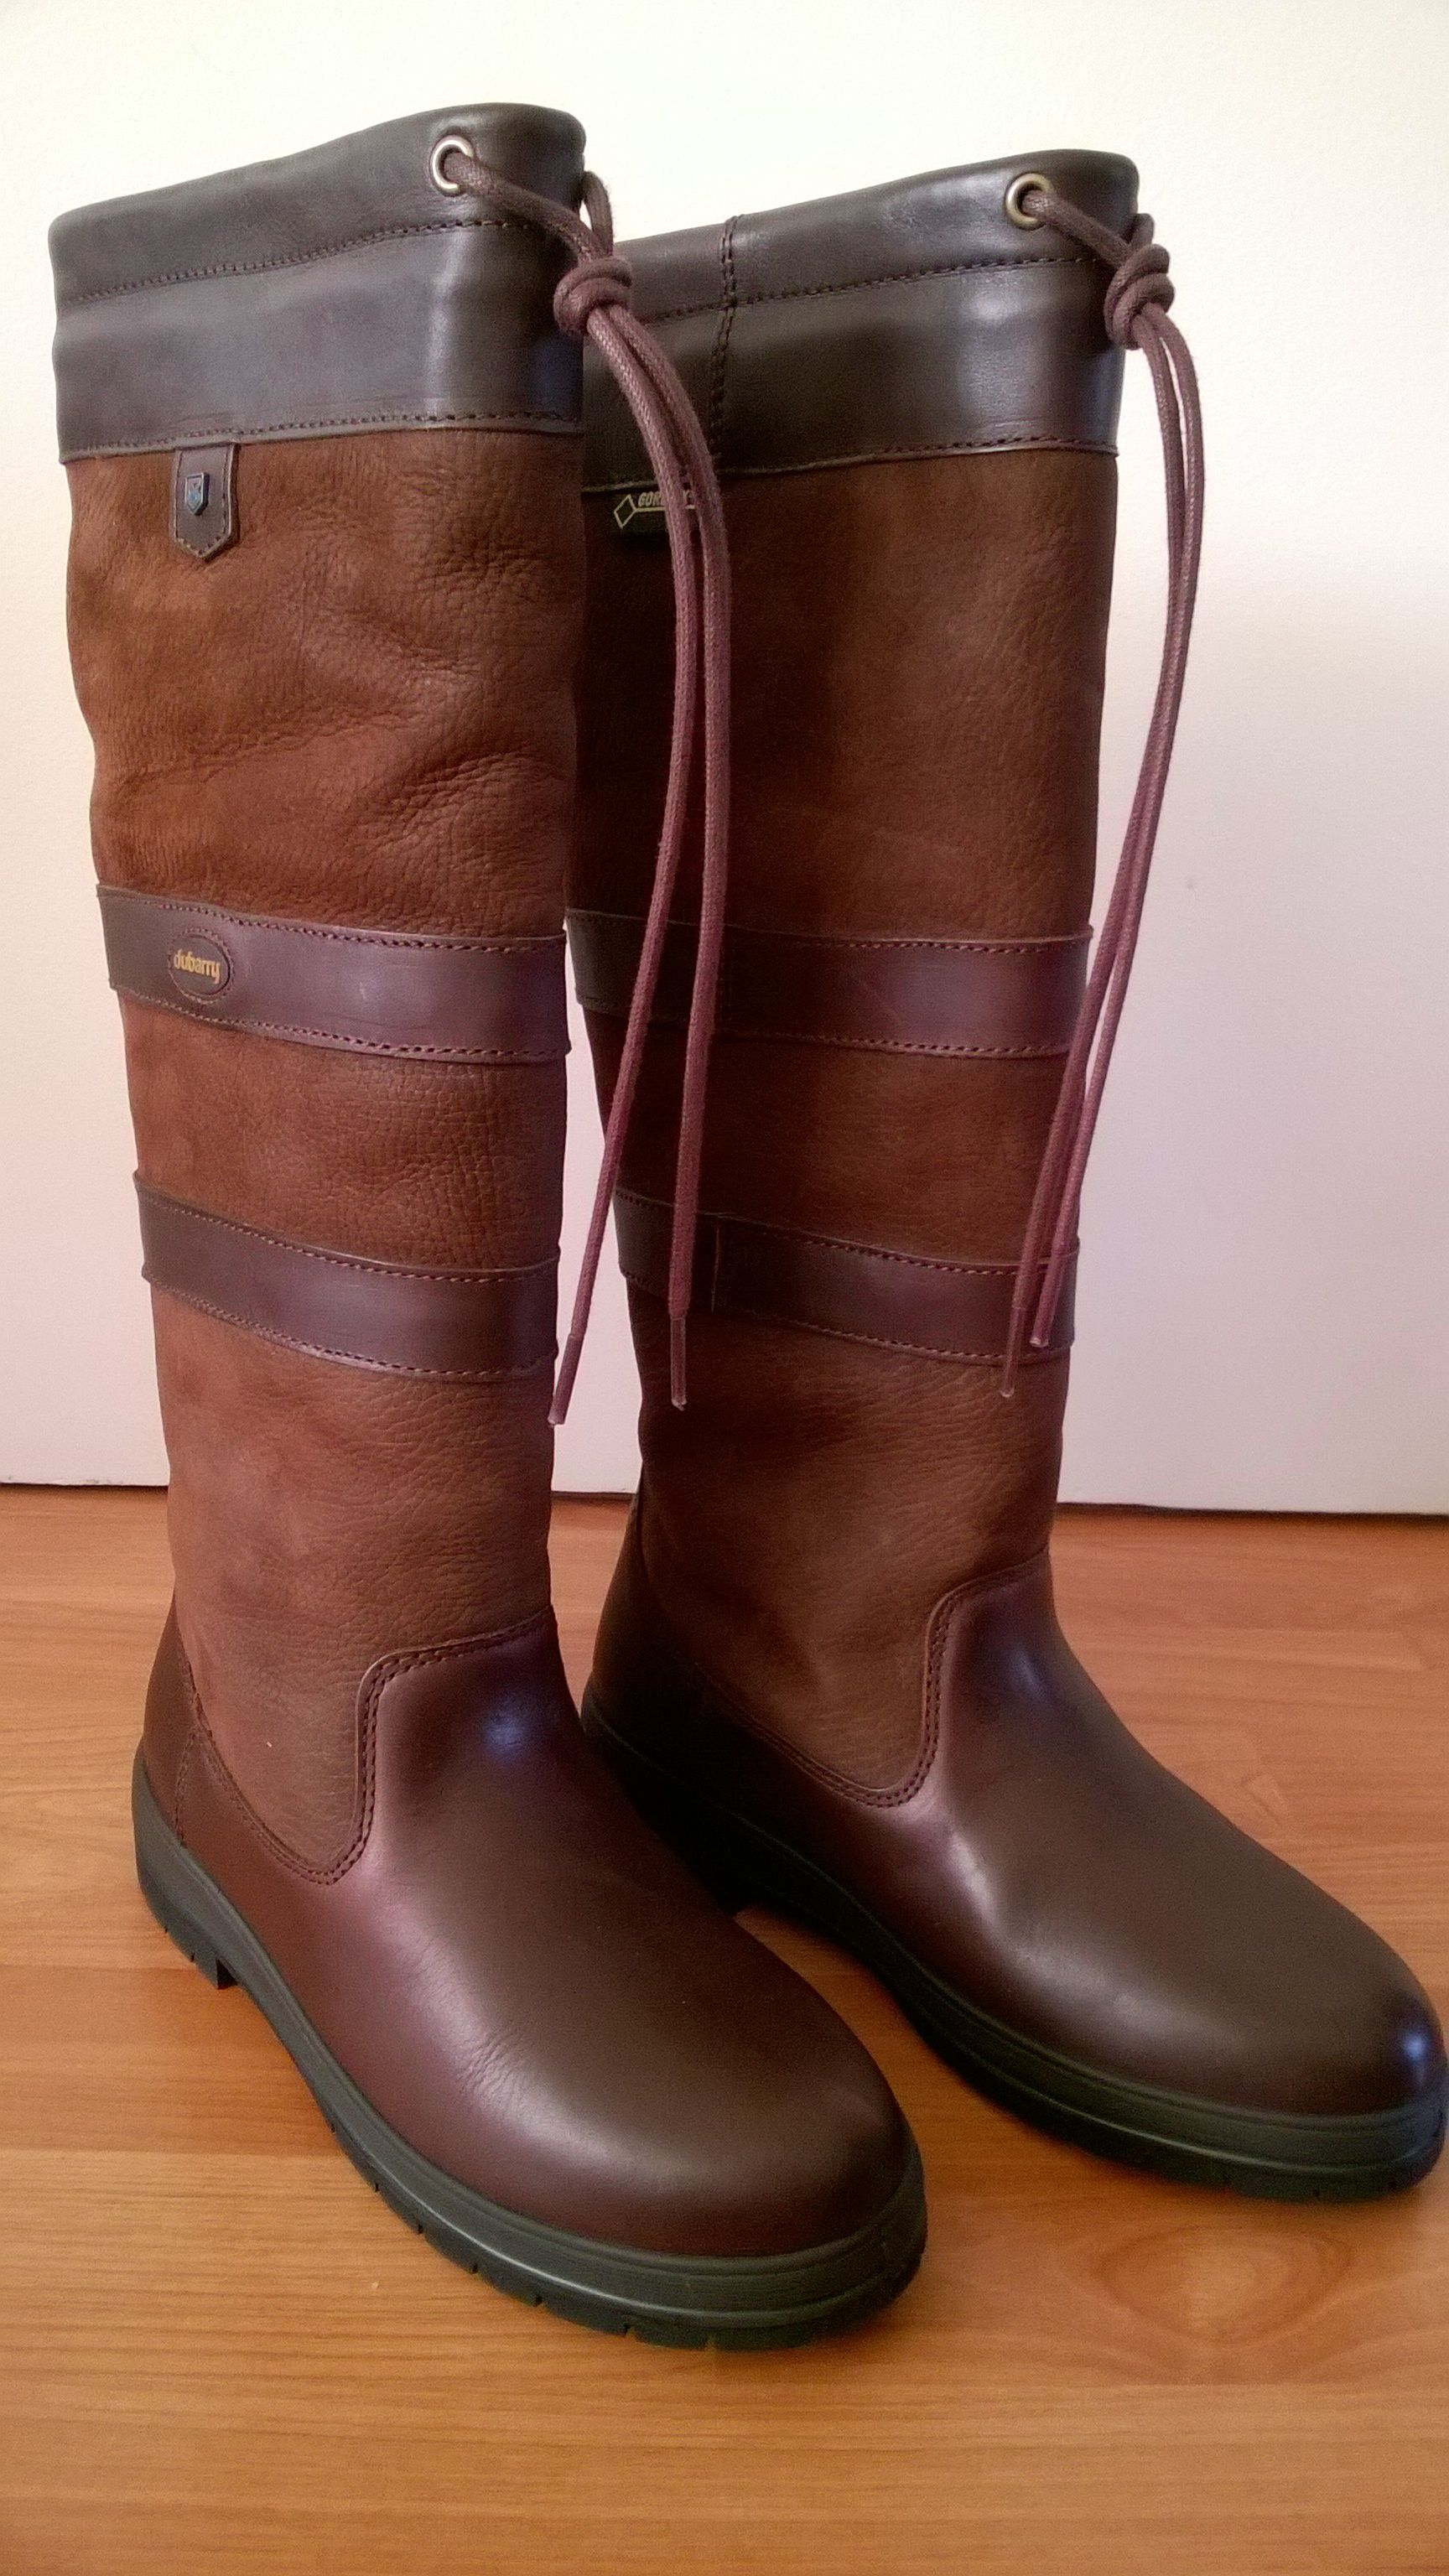 Bottes Dubarry of Ireland | fashion, flashbacks and great